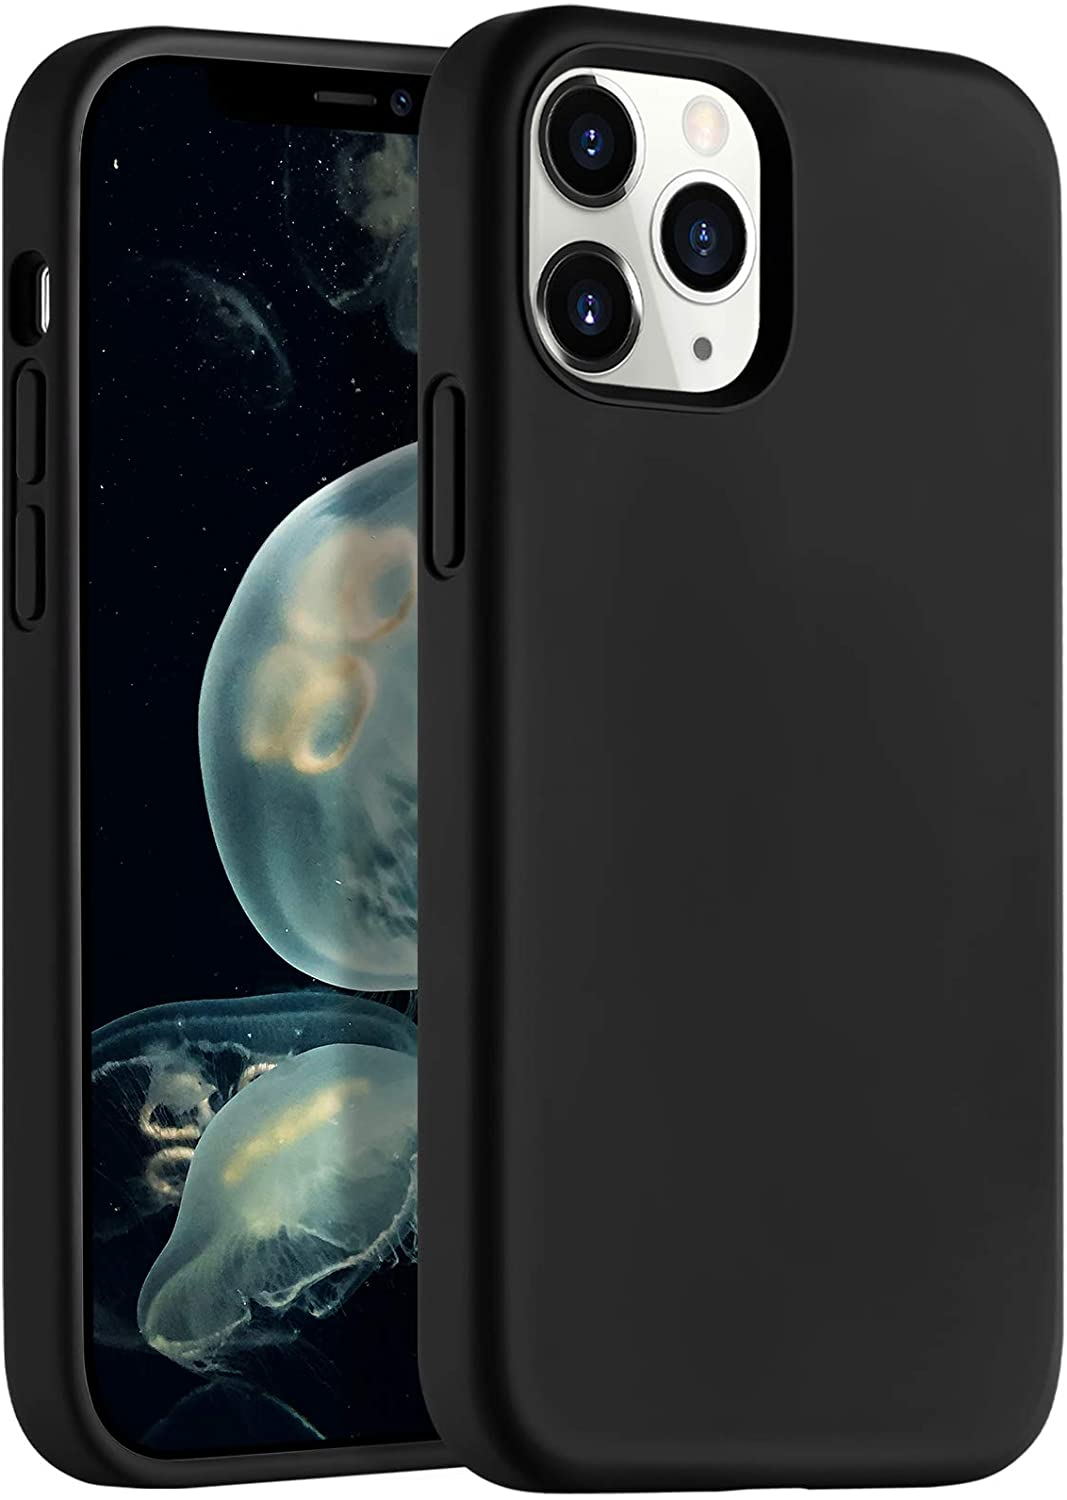 LEOMARON Compatible with iPhone 12 and iPhone 12 Pro Case 6.1 inch, Liquid Silicone Full Body Protection Cover Case with Soft Microfiber Cloth Lining for iPhone 12 and iPhone 12 Pro 2020, Black